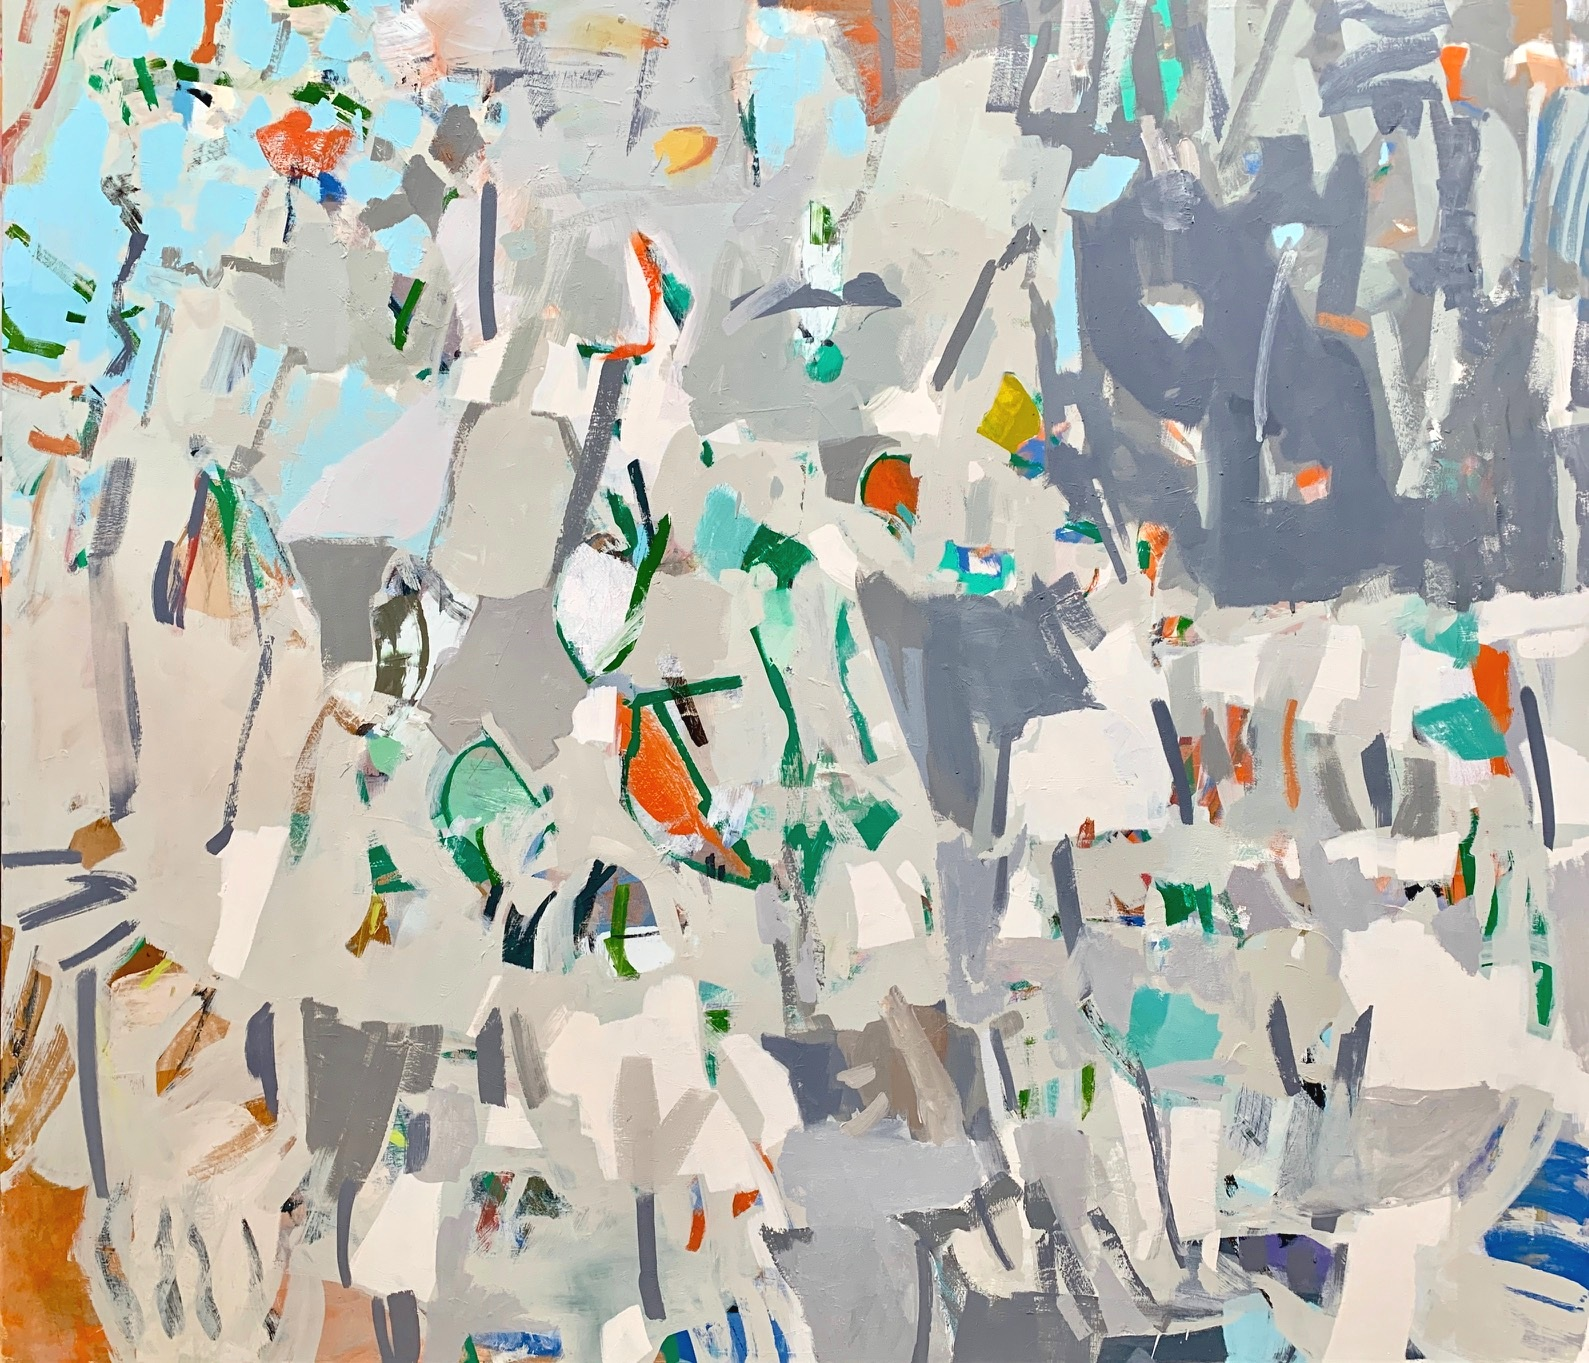 Sprig 2018 52 x 60 inches Oil on Canvas